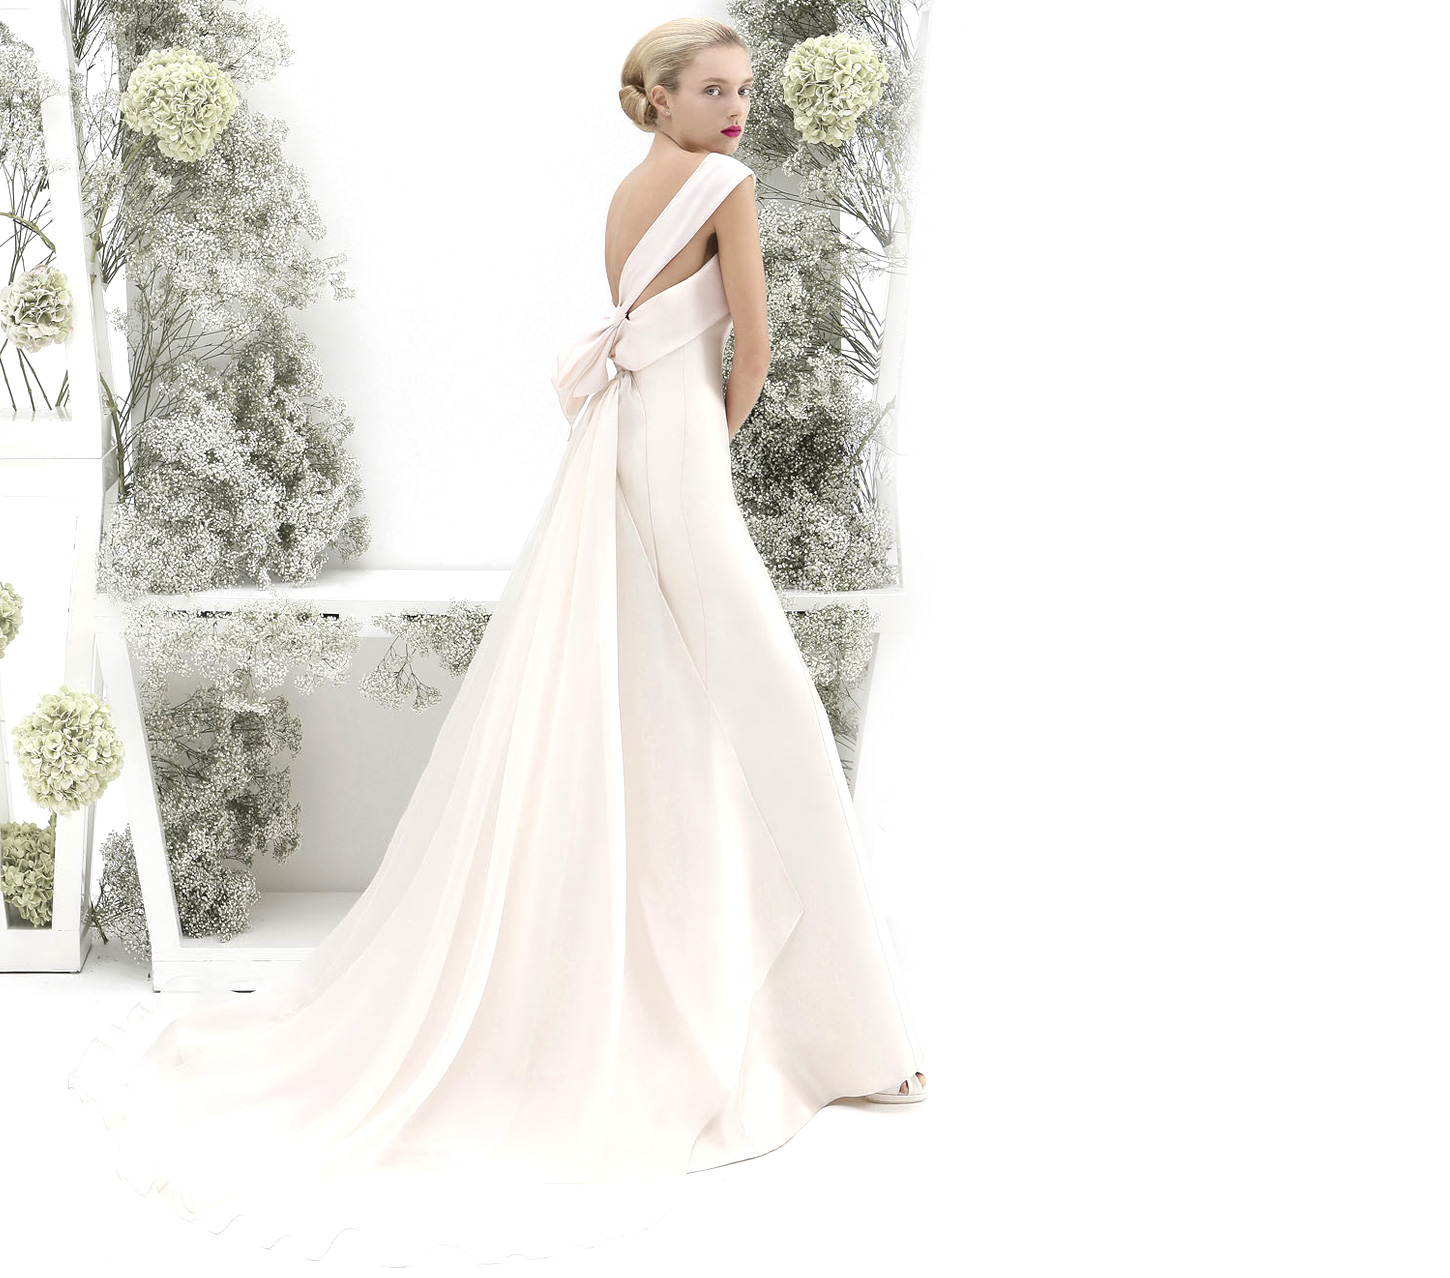 classy style wedding dresses collection from anna ceruti 2 classy wedding dresses Classy Style Wedding Dresses Collection from Anna Ceruti 2